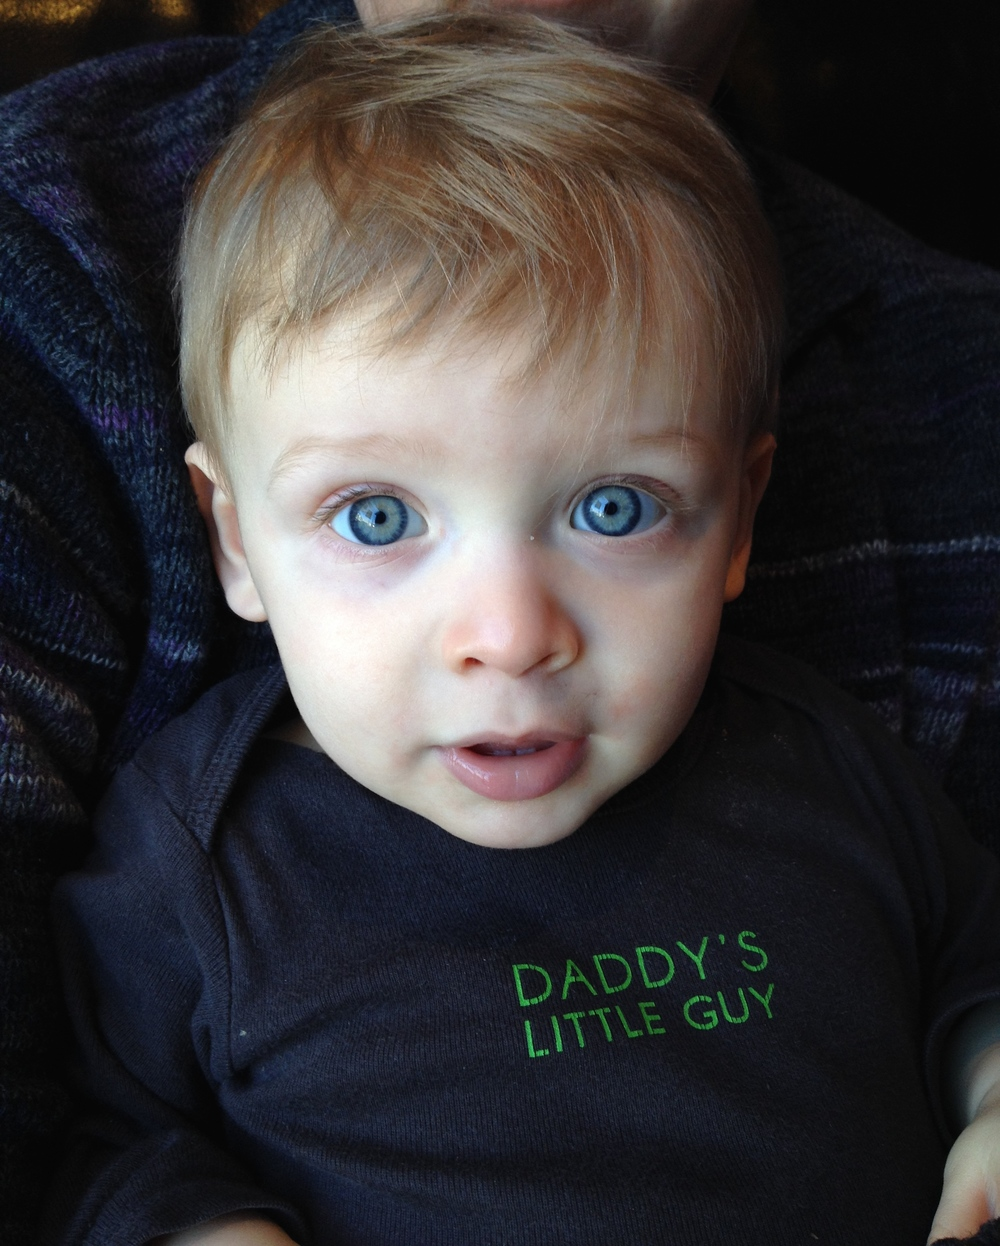 For some reason this is one of my favorite pictures. This is the Ben, with his blue eyes, that I remember in my dreams. This is the photo I finally downloaded as my iPhone screen to greet me every day.